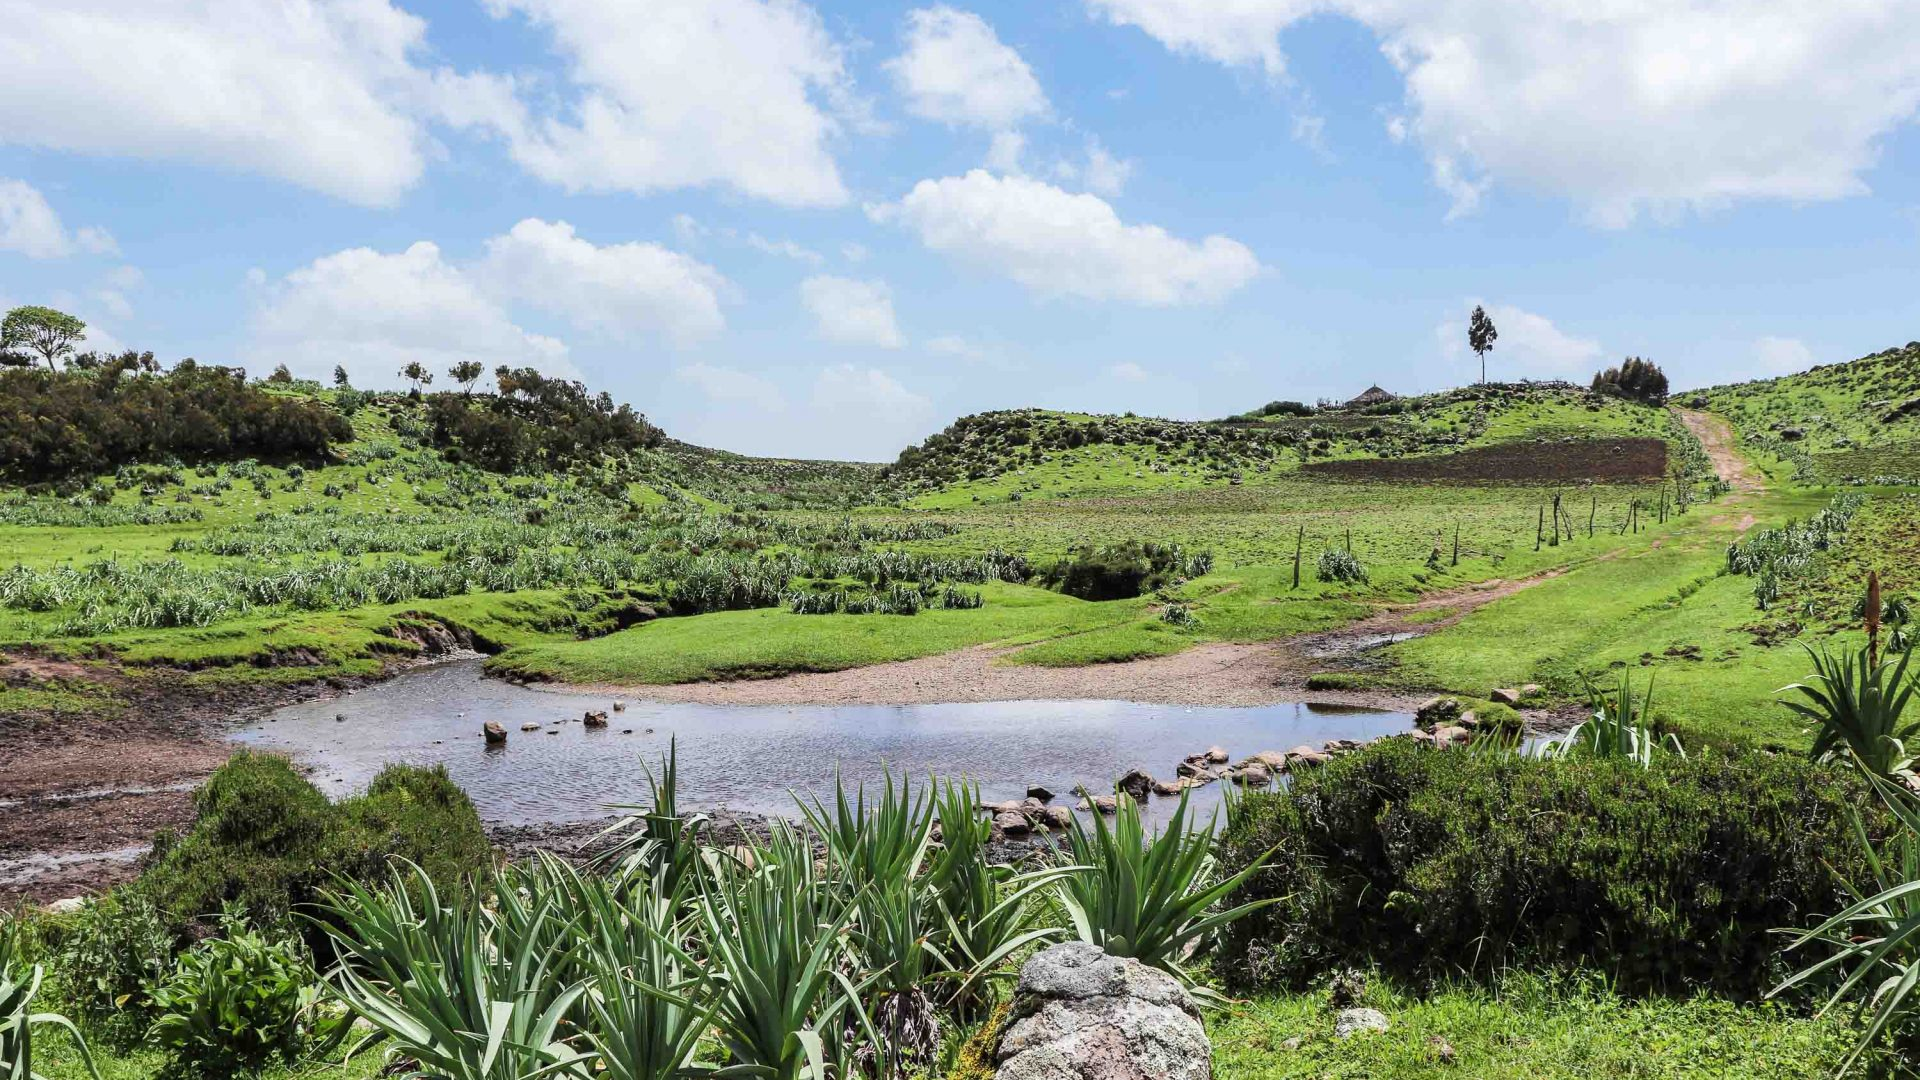 The spectacular Bale Mountains in Ethiopia.